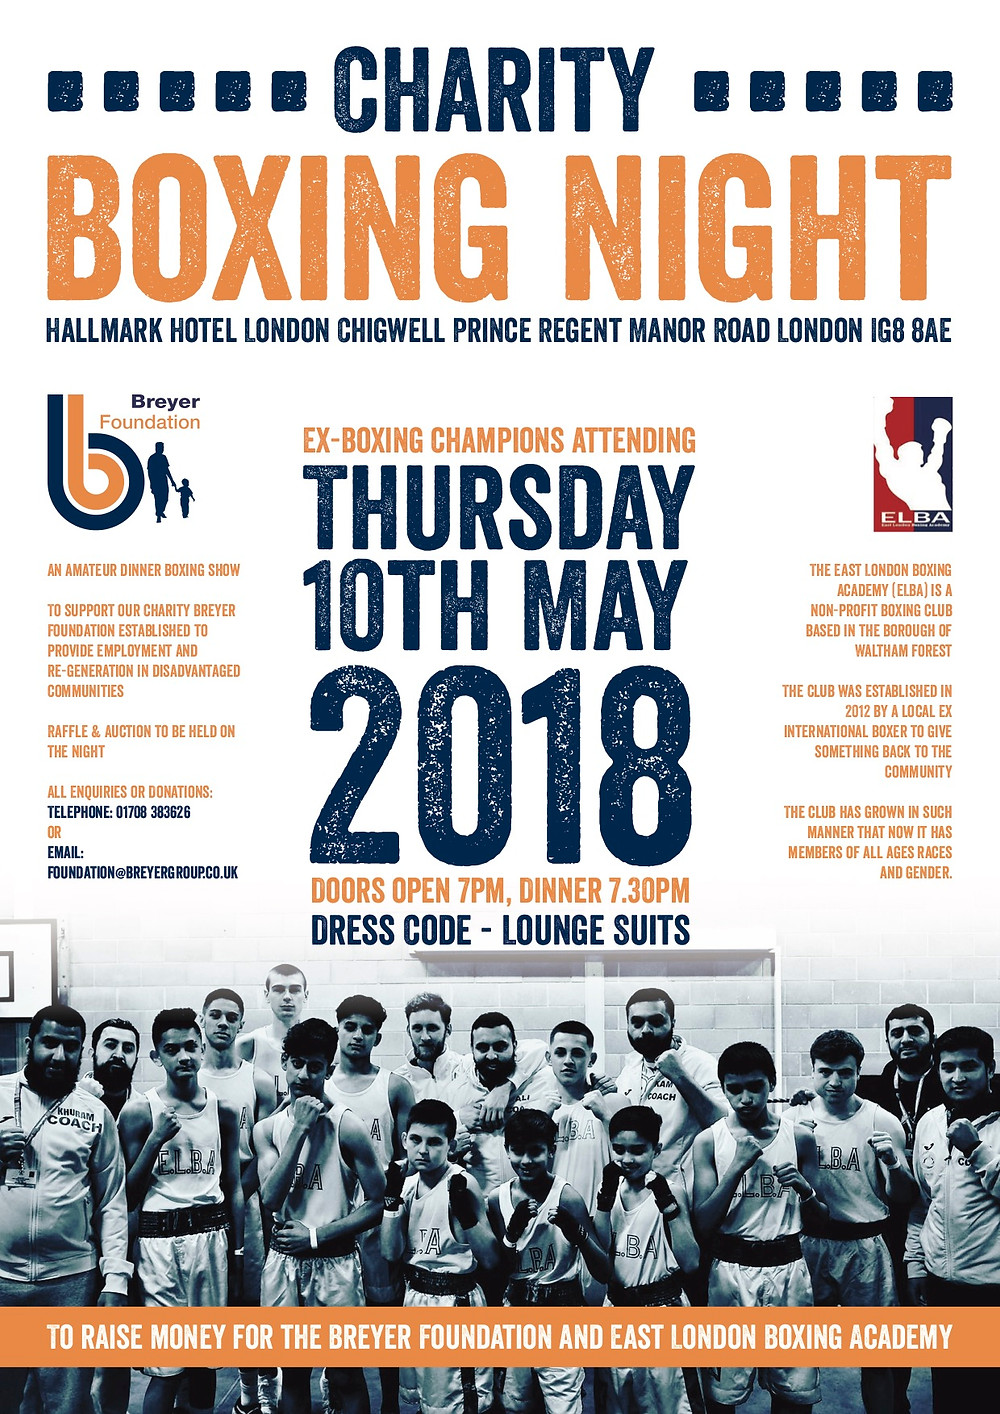 Charity Boxing Night poster for 10th May at the Hallmark Hotel, Chigwell